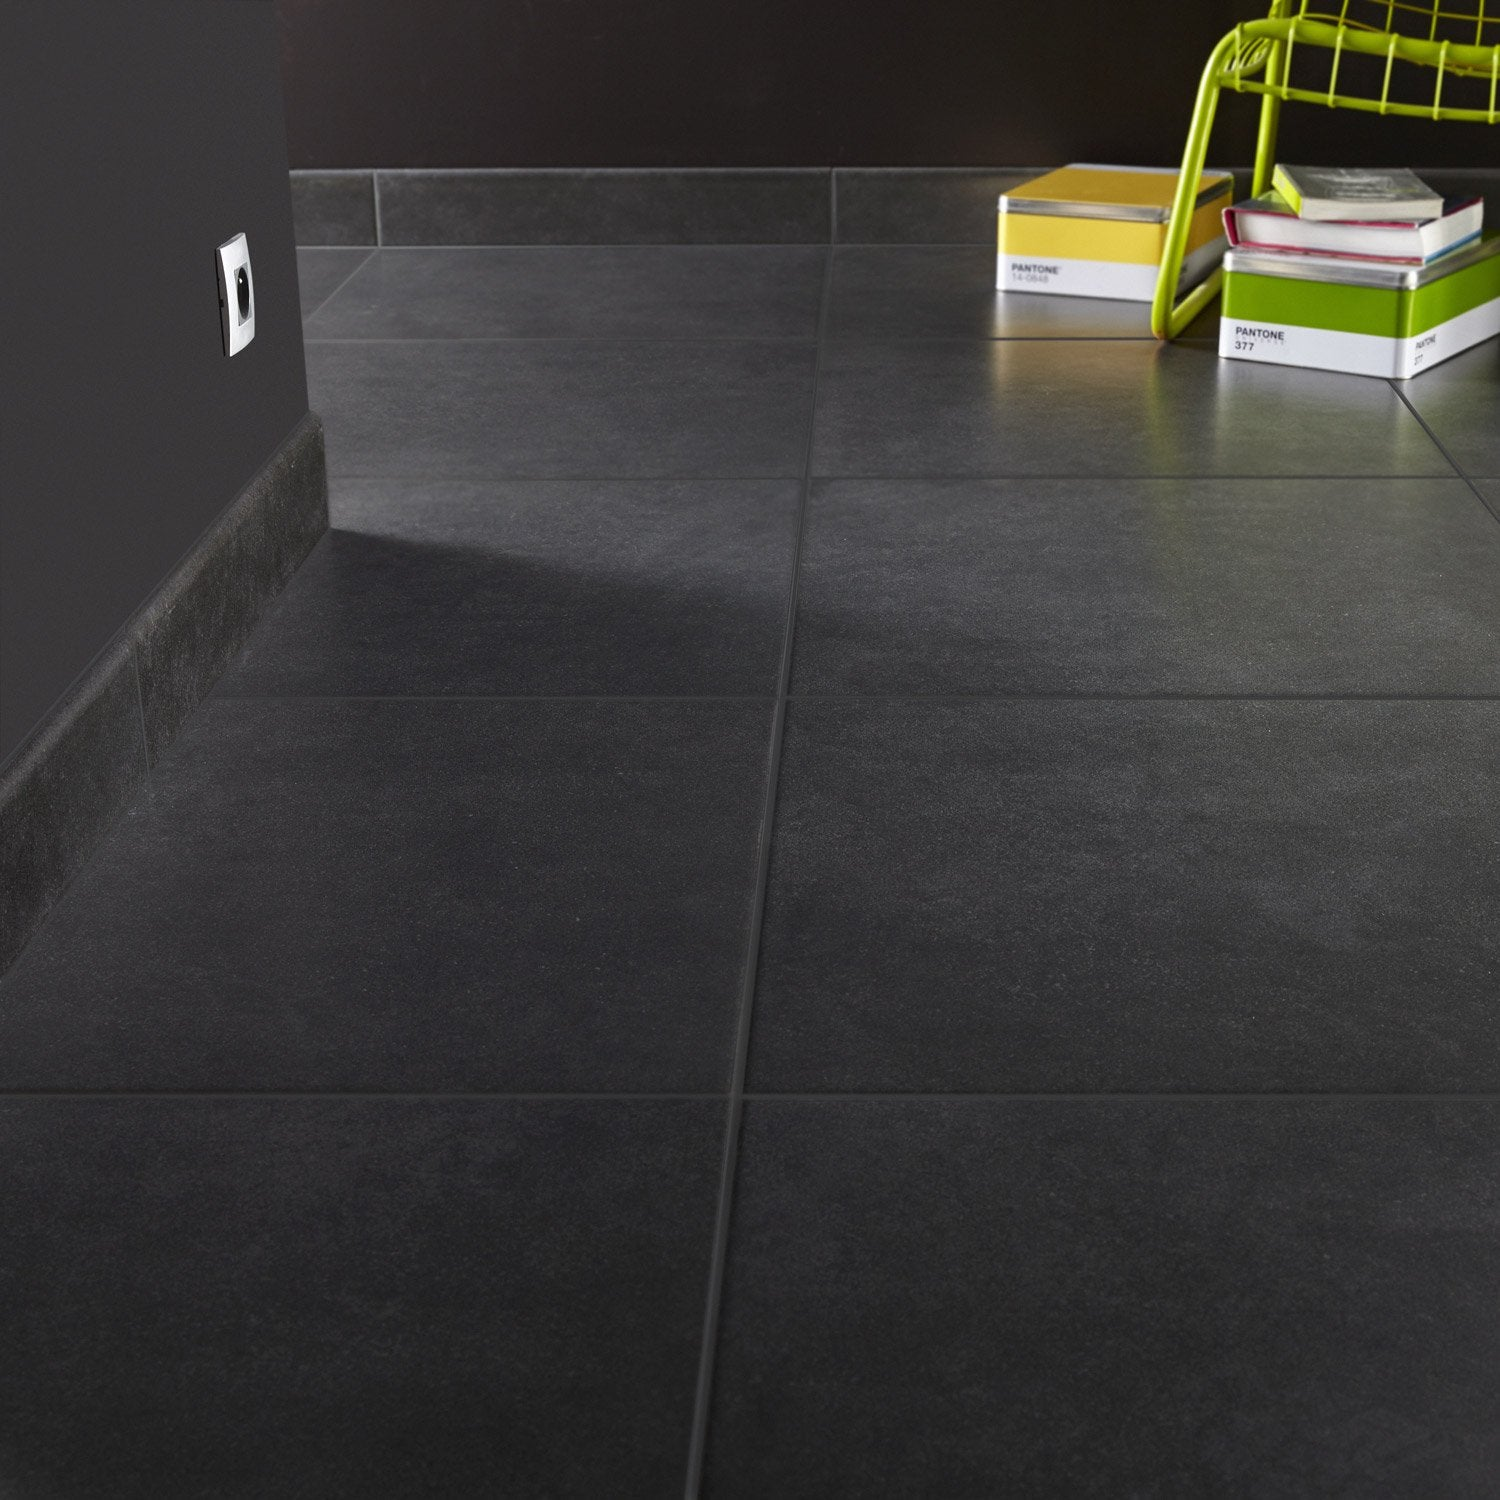 Joint carrelage ciment gris 28 images carrelage for Carrelage beton leroy merlin